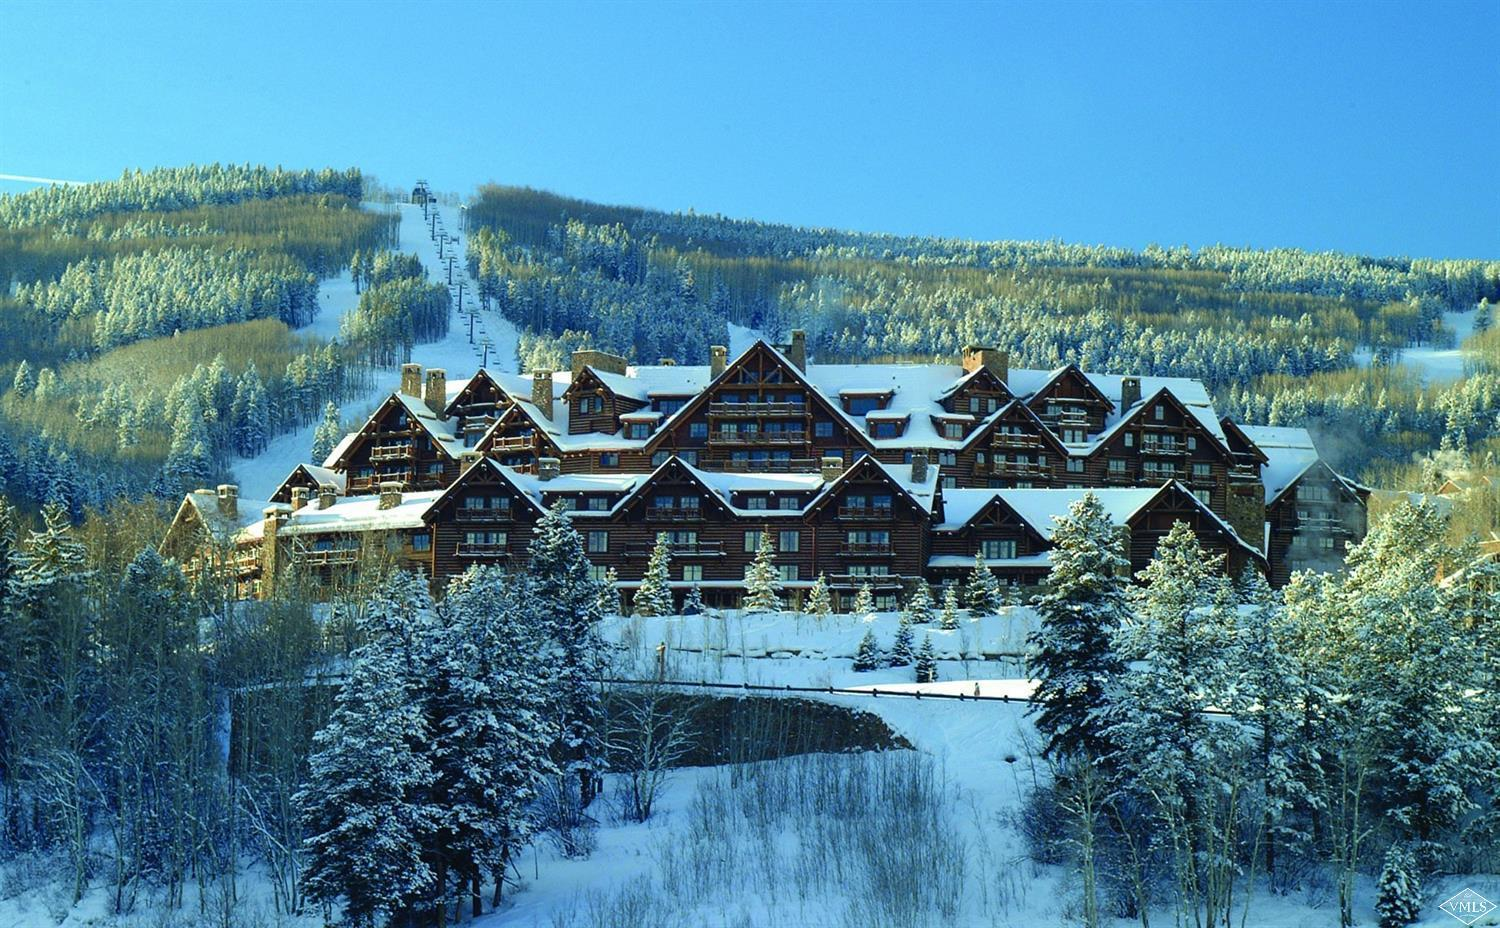 Enjoy worldwide advantage of ownership at the Ritz-Carlton in Bachelor Gulch, Colorado. A turn-key, fully-furnished residence located on the 6th floor of the ski-in/ski-out Ritz-Carlton hotel. While in-residence delight in world class amenities including access to the Ritz-Carlton Spa, fitness center, year-round outdoor pool, ski valet services, Red Sky Ranch golf, free valet parking, in-room dining, daily housekeeping and more. Suite 655 is a full-ownership condominium located in the hotel.